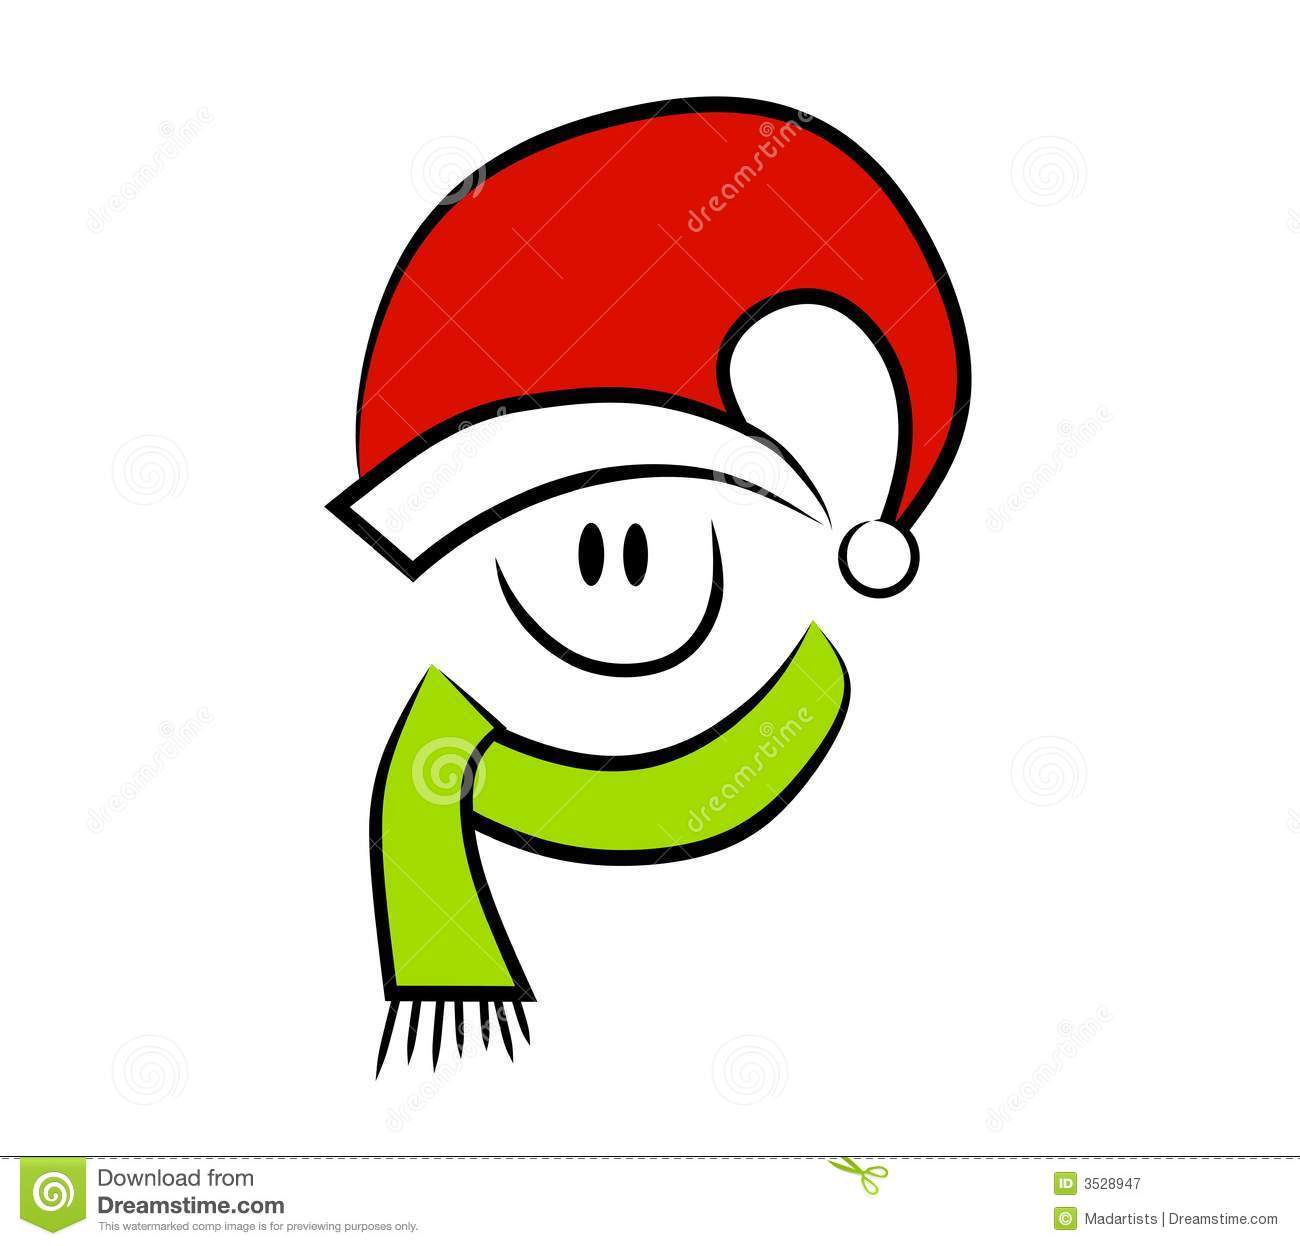 download wallpaper free clipart santa hat full wallpapers rh b roketstore com Laughing Smiley Face Clip Art Christmas Smiley Face with Hat Clip Art